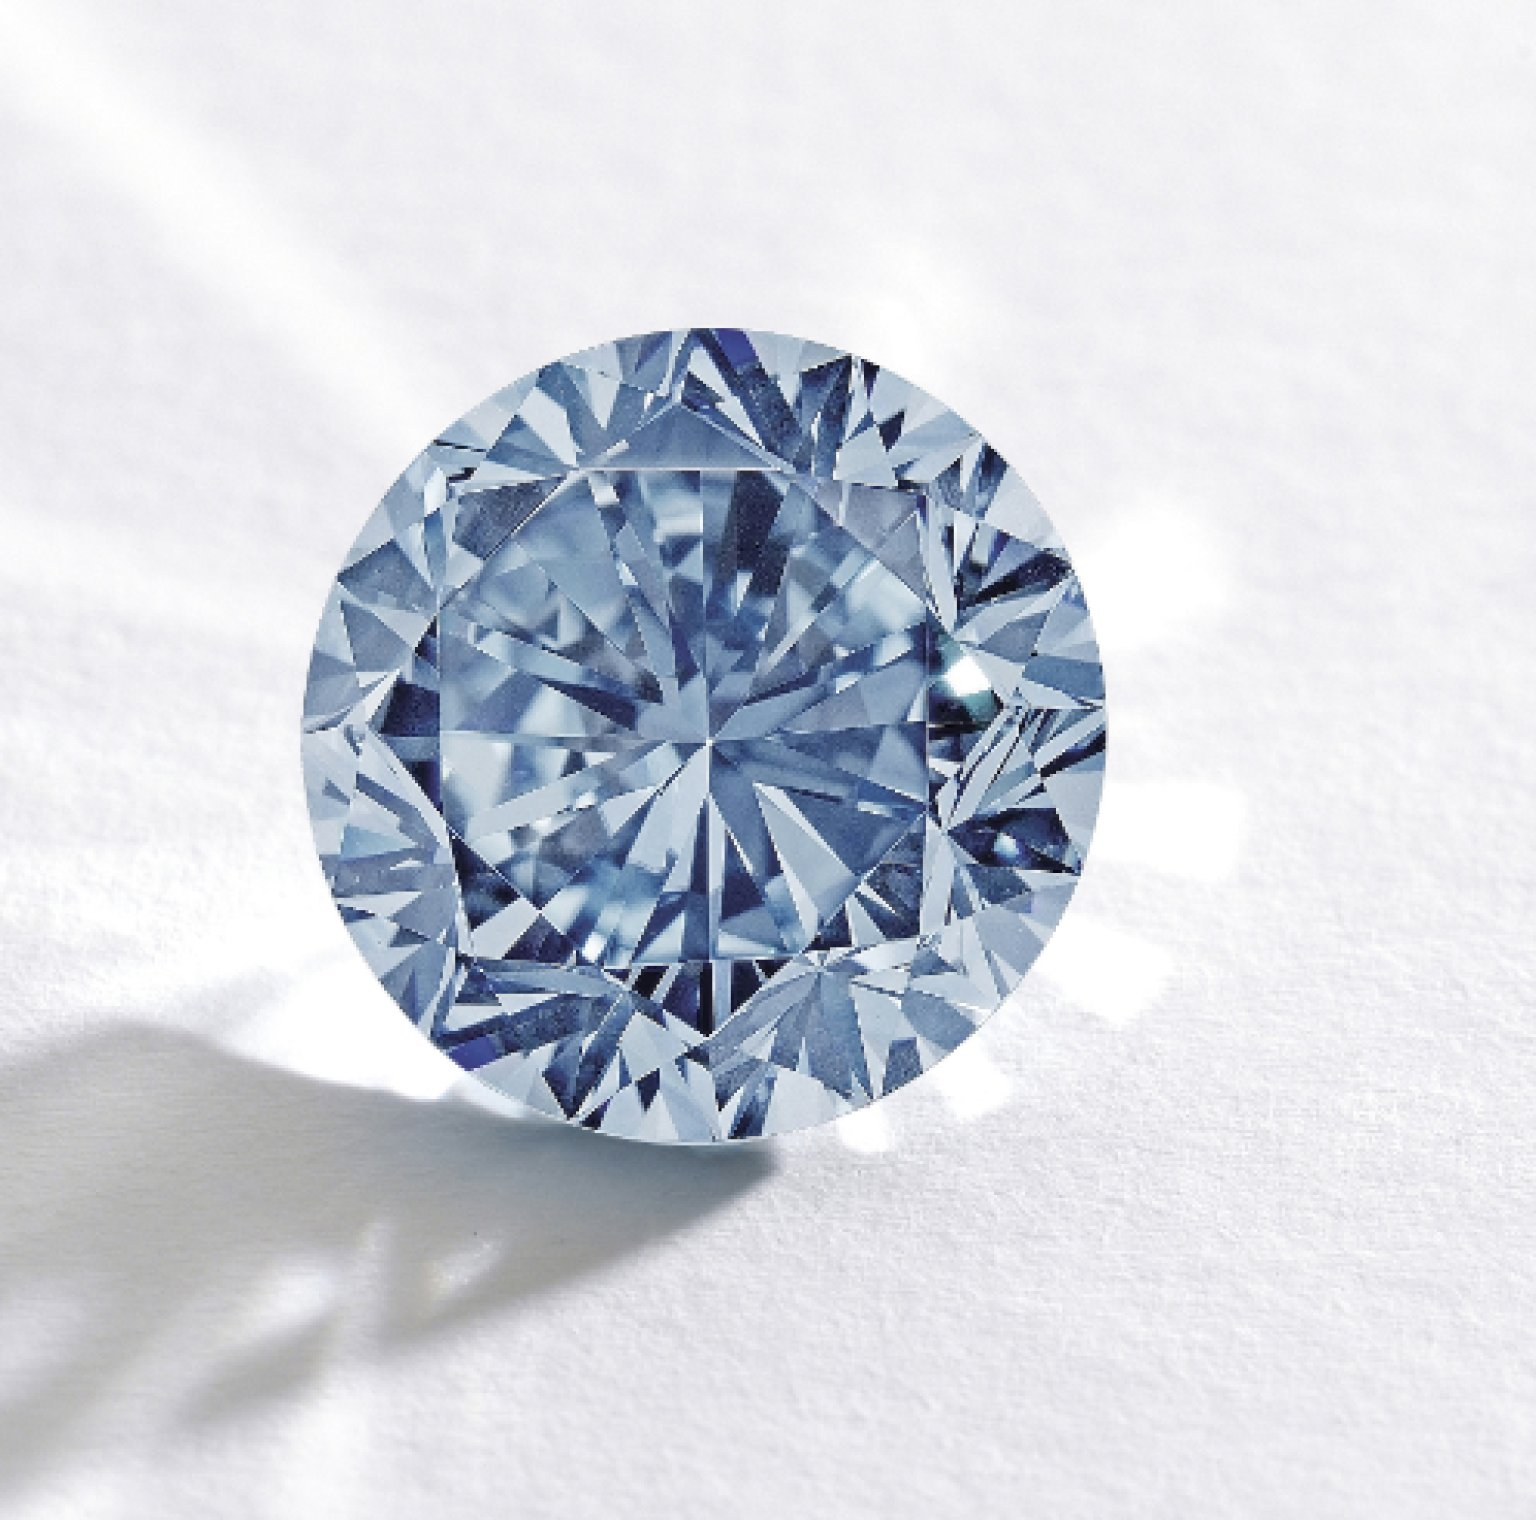 World S Biggest Fancy Vivid Blue Diamond Expected To Fetch